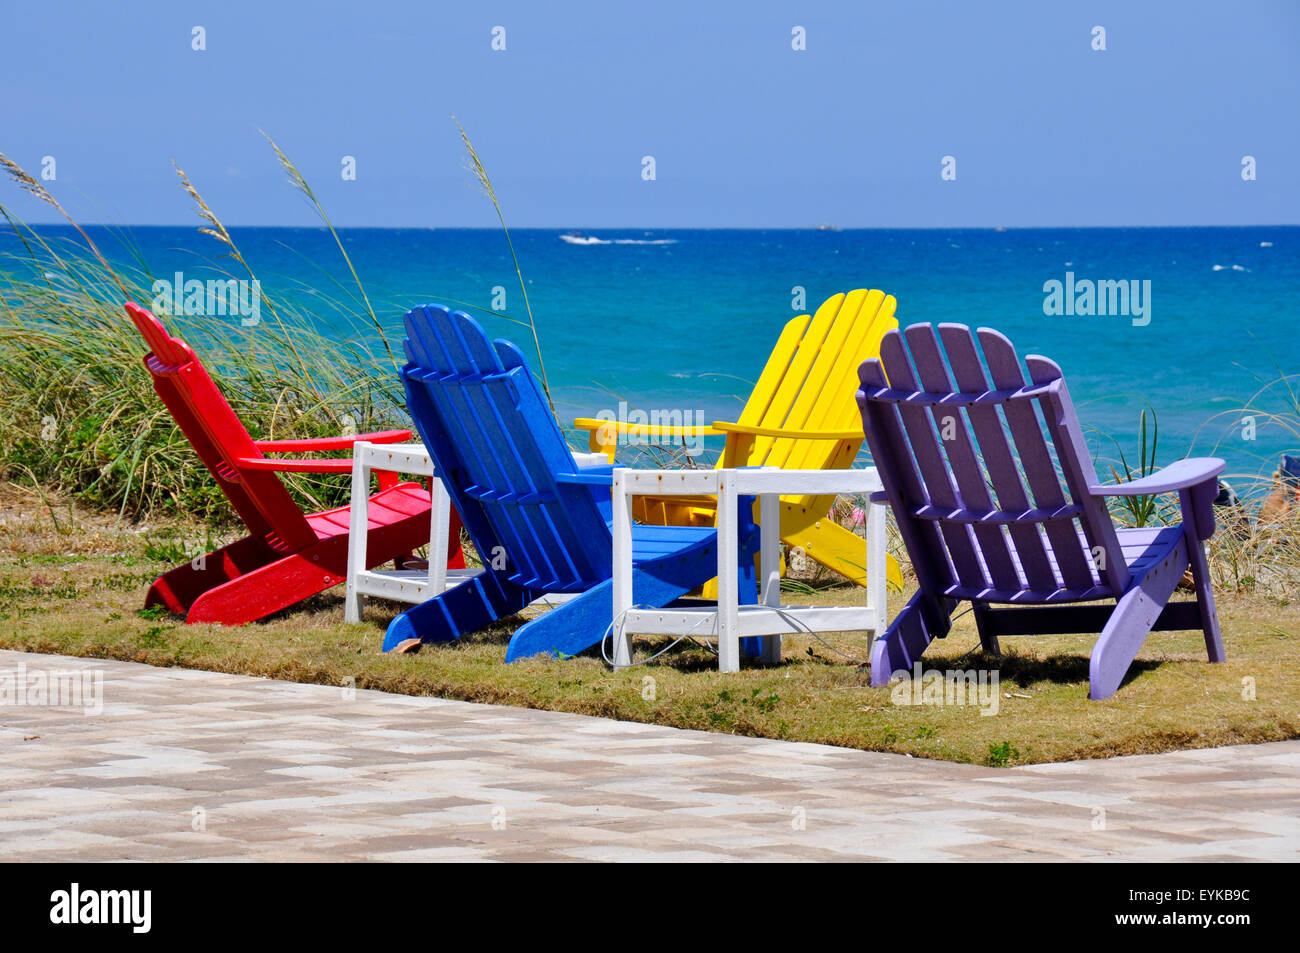 Four colorful Adirondack chairs overlooking the ocean and ...